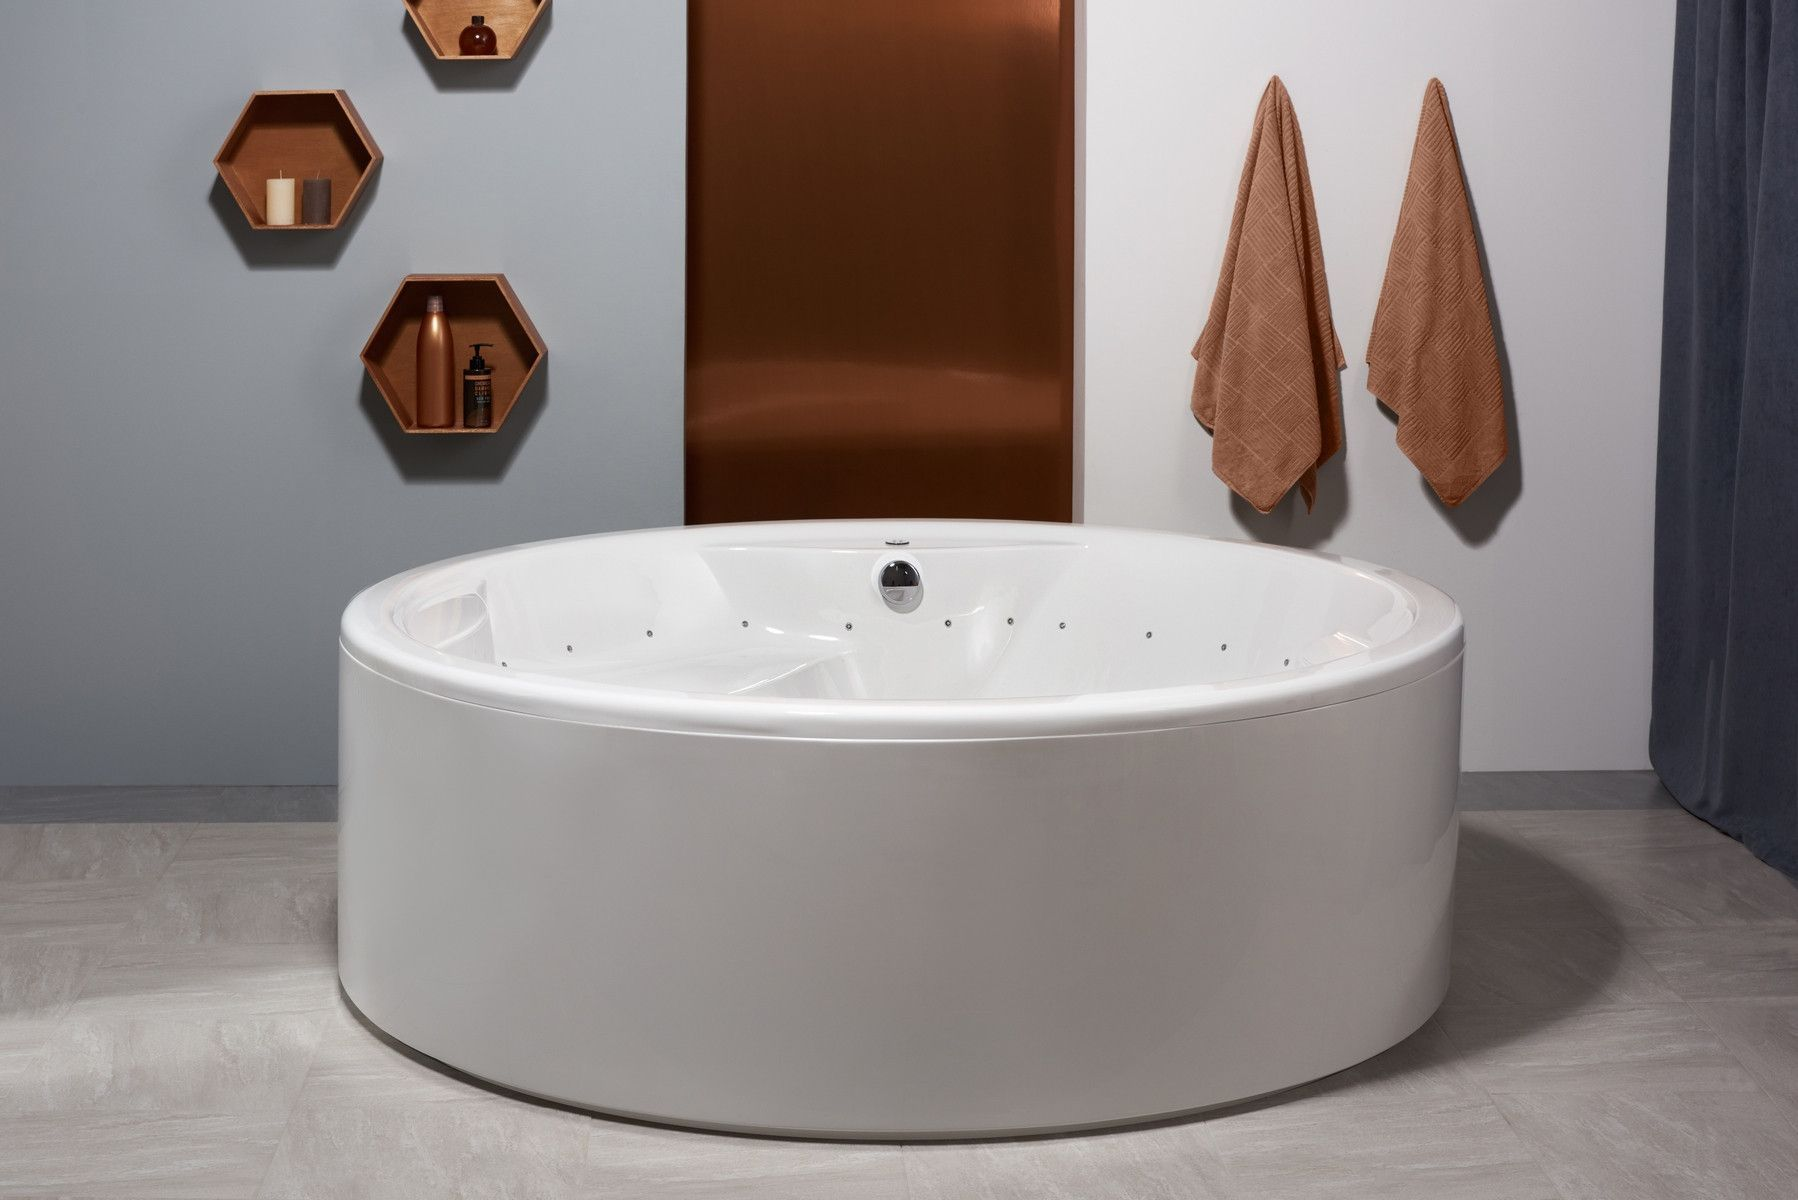 Aquatica Allegra RELAX: Huge Freestanding Circular Massage Bath ...